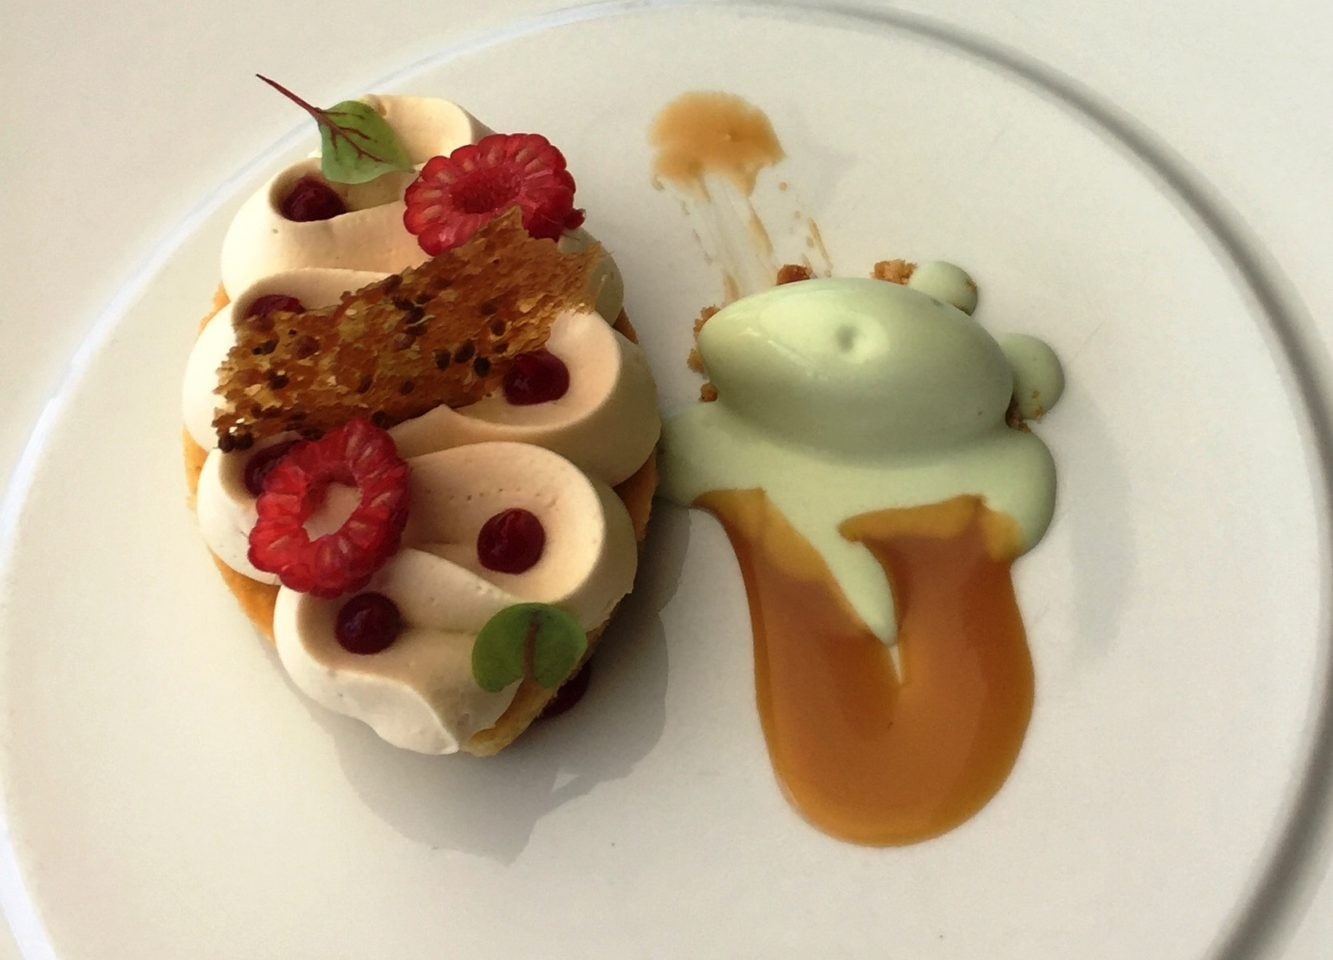 A dessert at Chateau Eza in Eze near Nice ~ Sable Breton aux Saveurs de Provence ~ Chocolat dulcey, confit framboises et gingembre, caramel au thym, creme glacee fenouil ~ When in Nice, we live to eat !